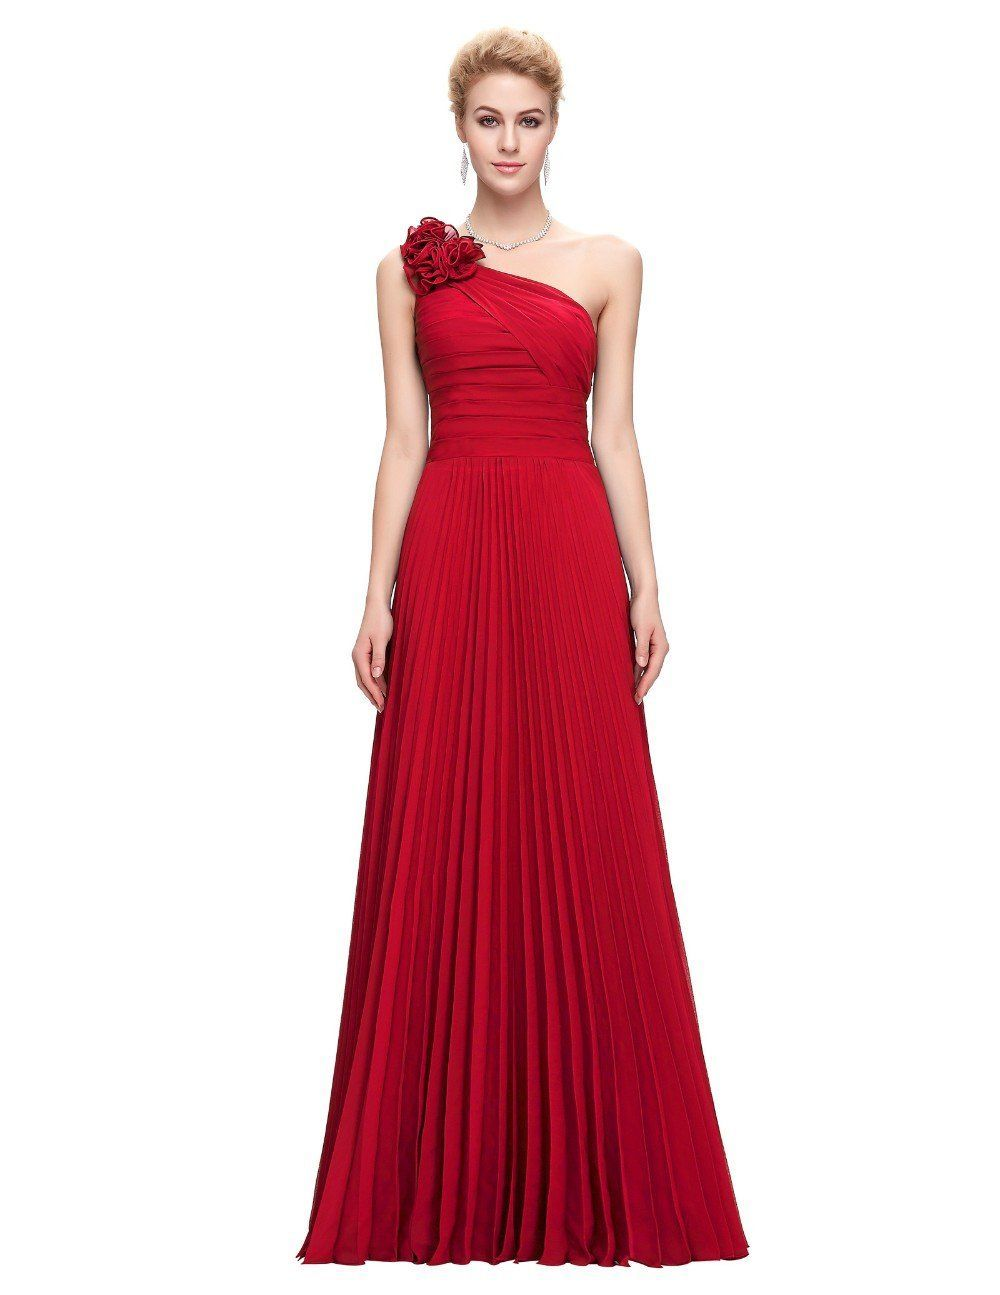 Chiffon long evening prom gown dress plus size selling products